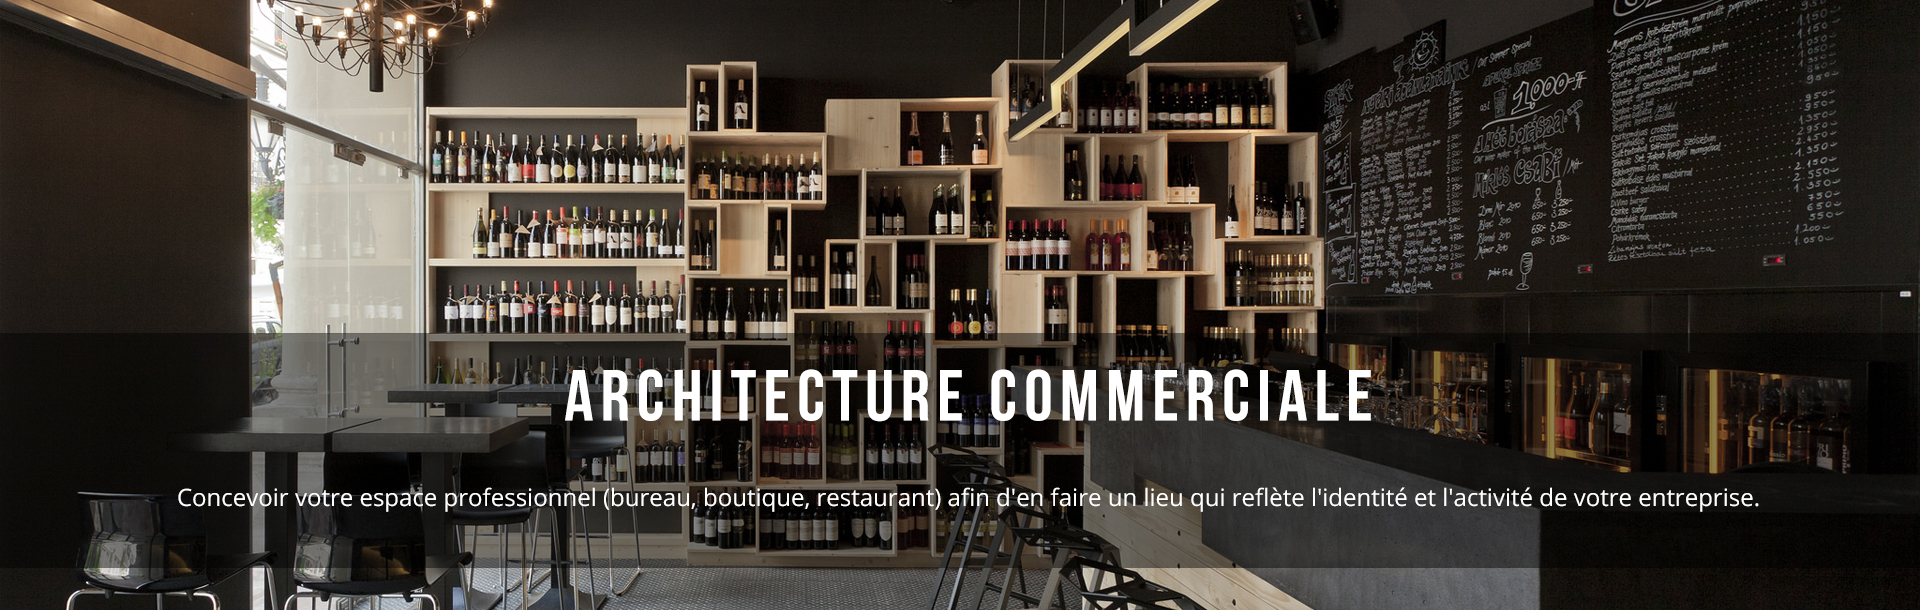 ARCHITECTURE COMMERCIALE